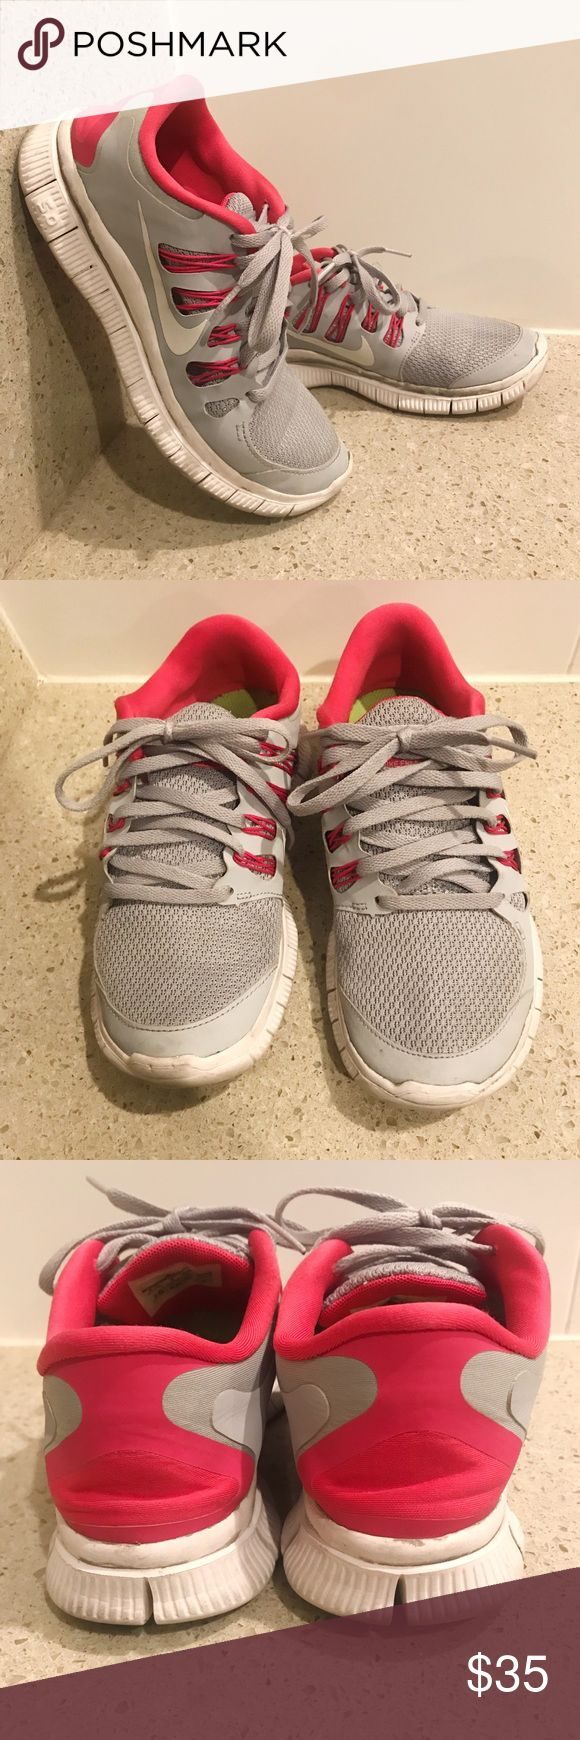 Nike frees 5.0+ running shoes Nike frees 5.0+ running shoes • size 6.5 • true to size • color gray & pink • used but still very comfortable • some gray paint appeared on the bottom of shoe (picture shown above)  💗 Nike Shoes Athletic Shoes